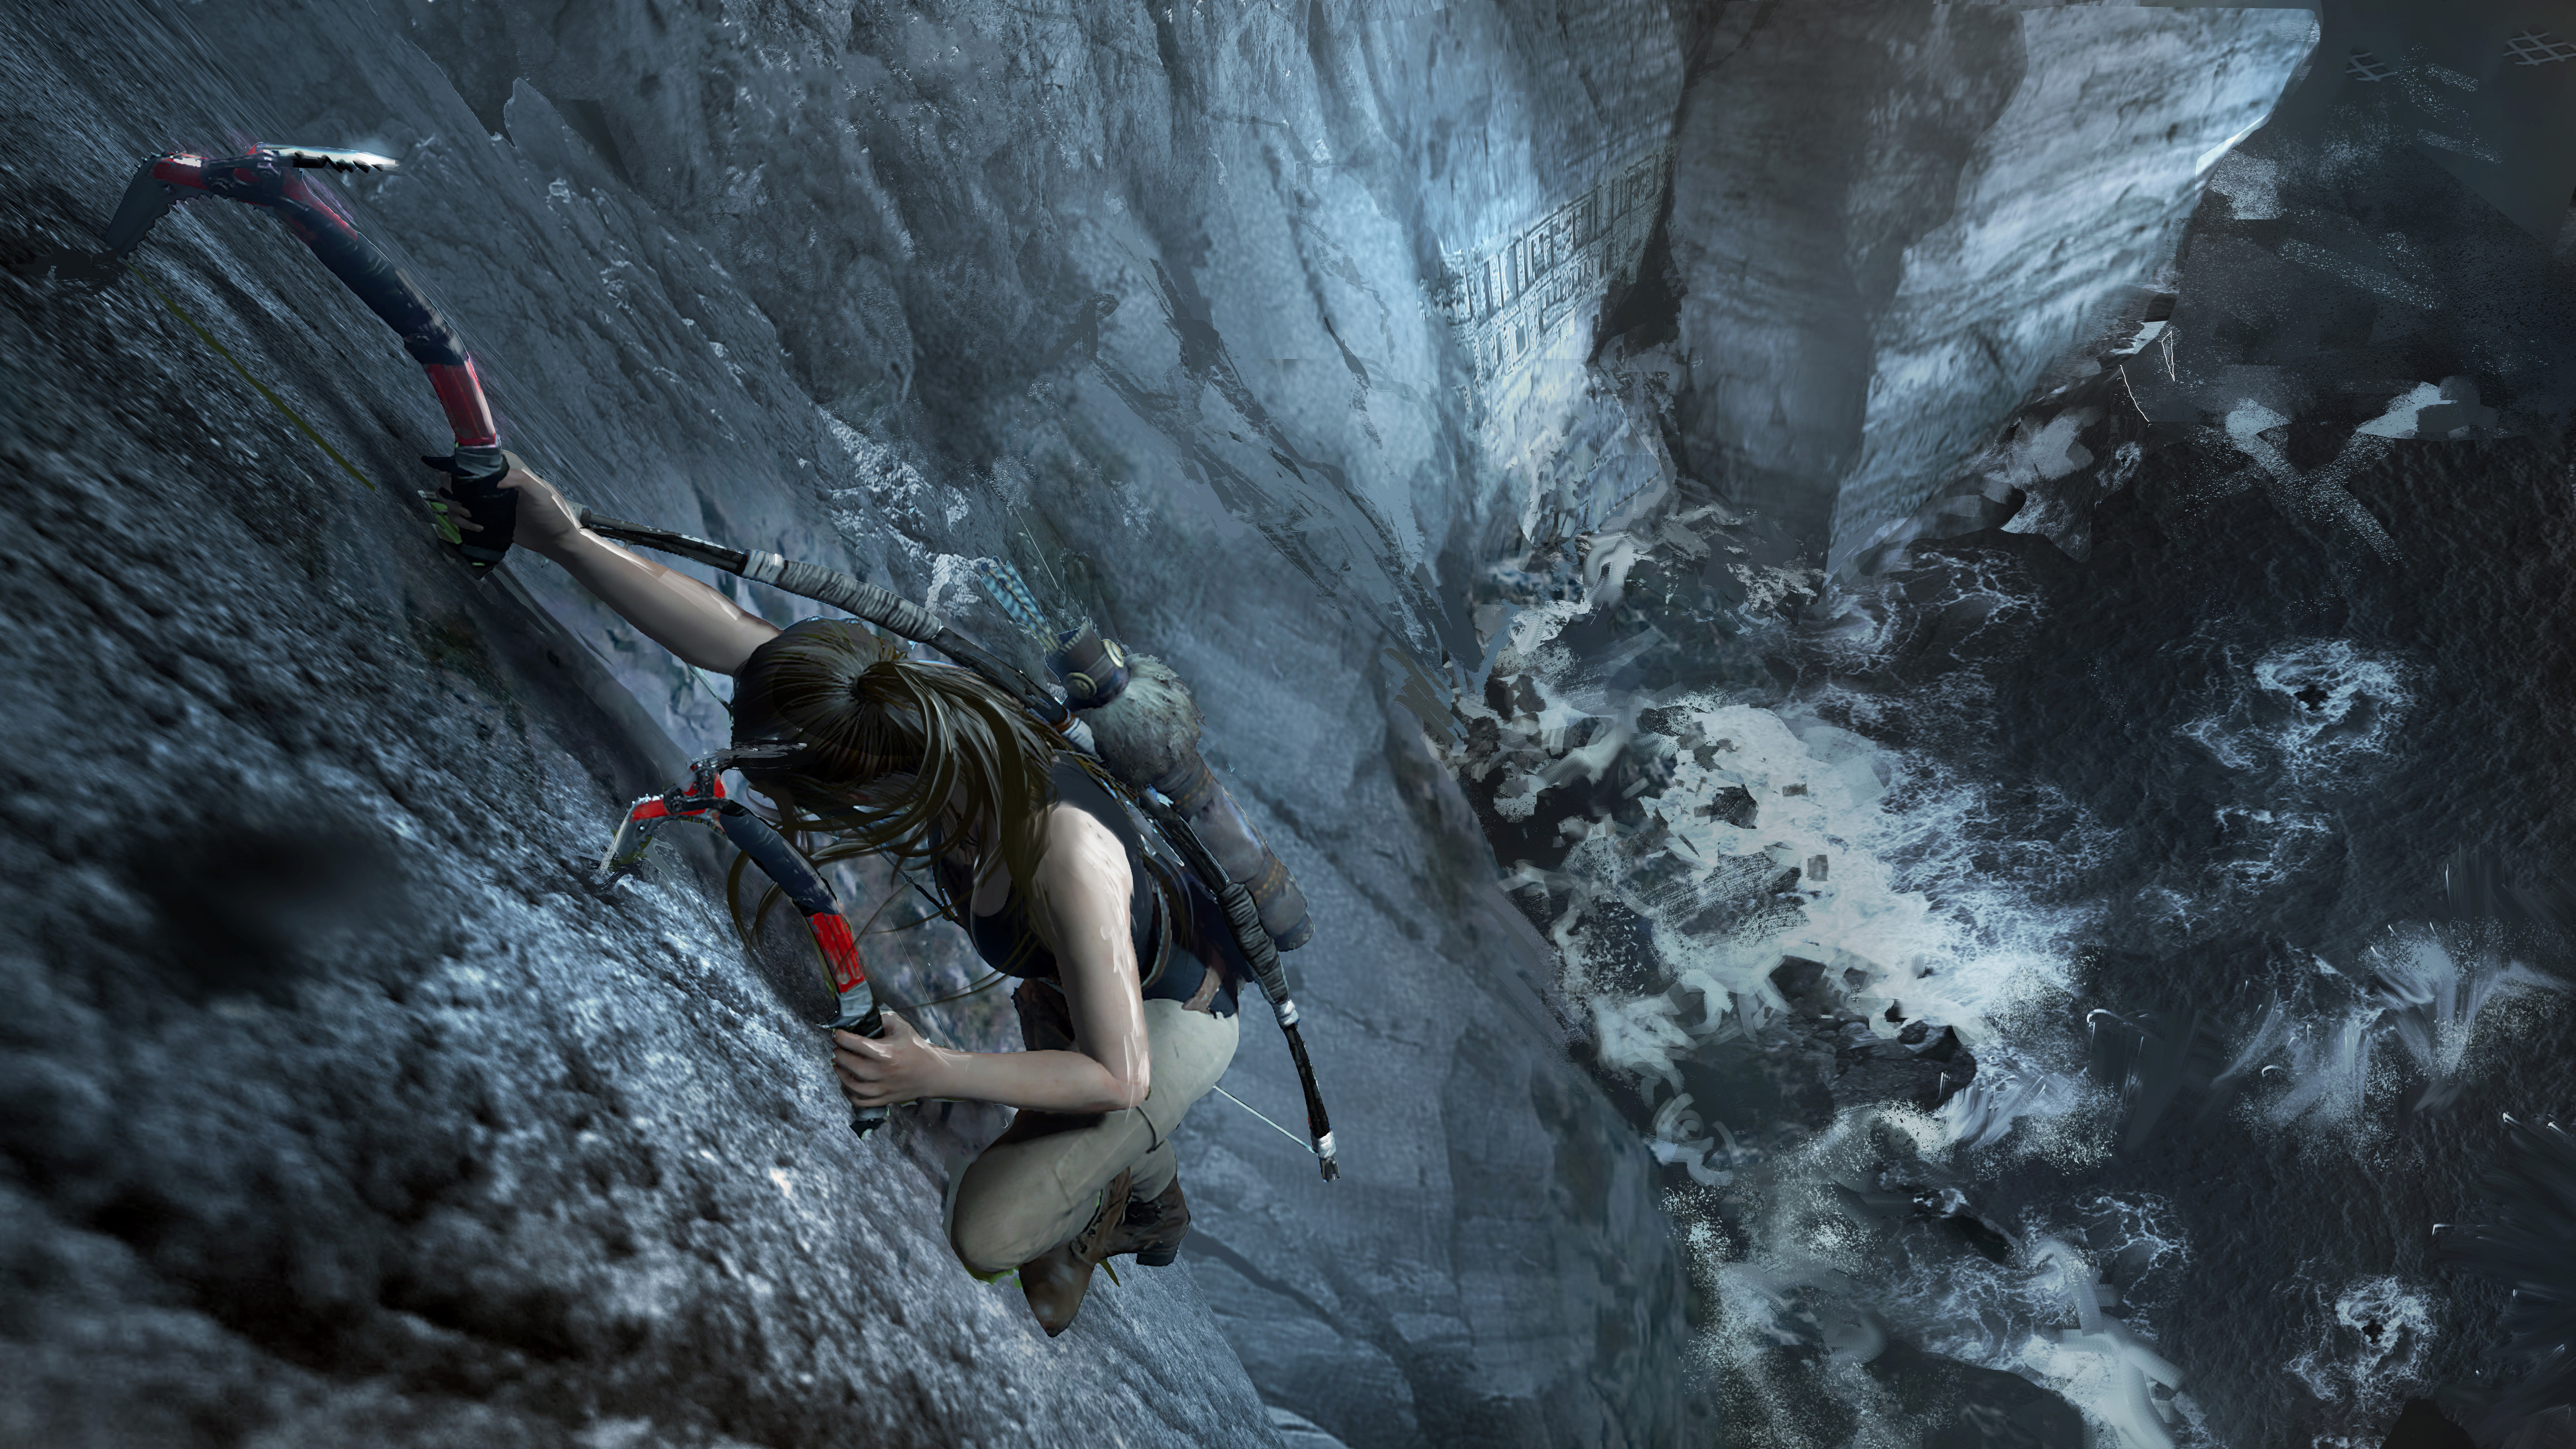 shadow-of-the-tomb-raider-2018-zd.jpg